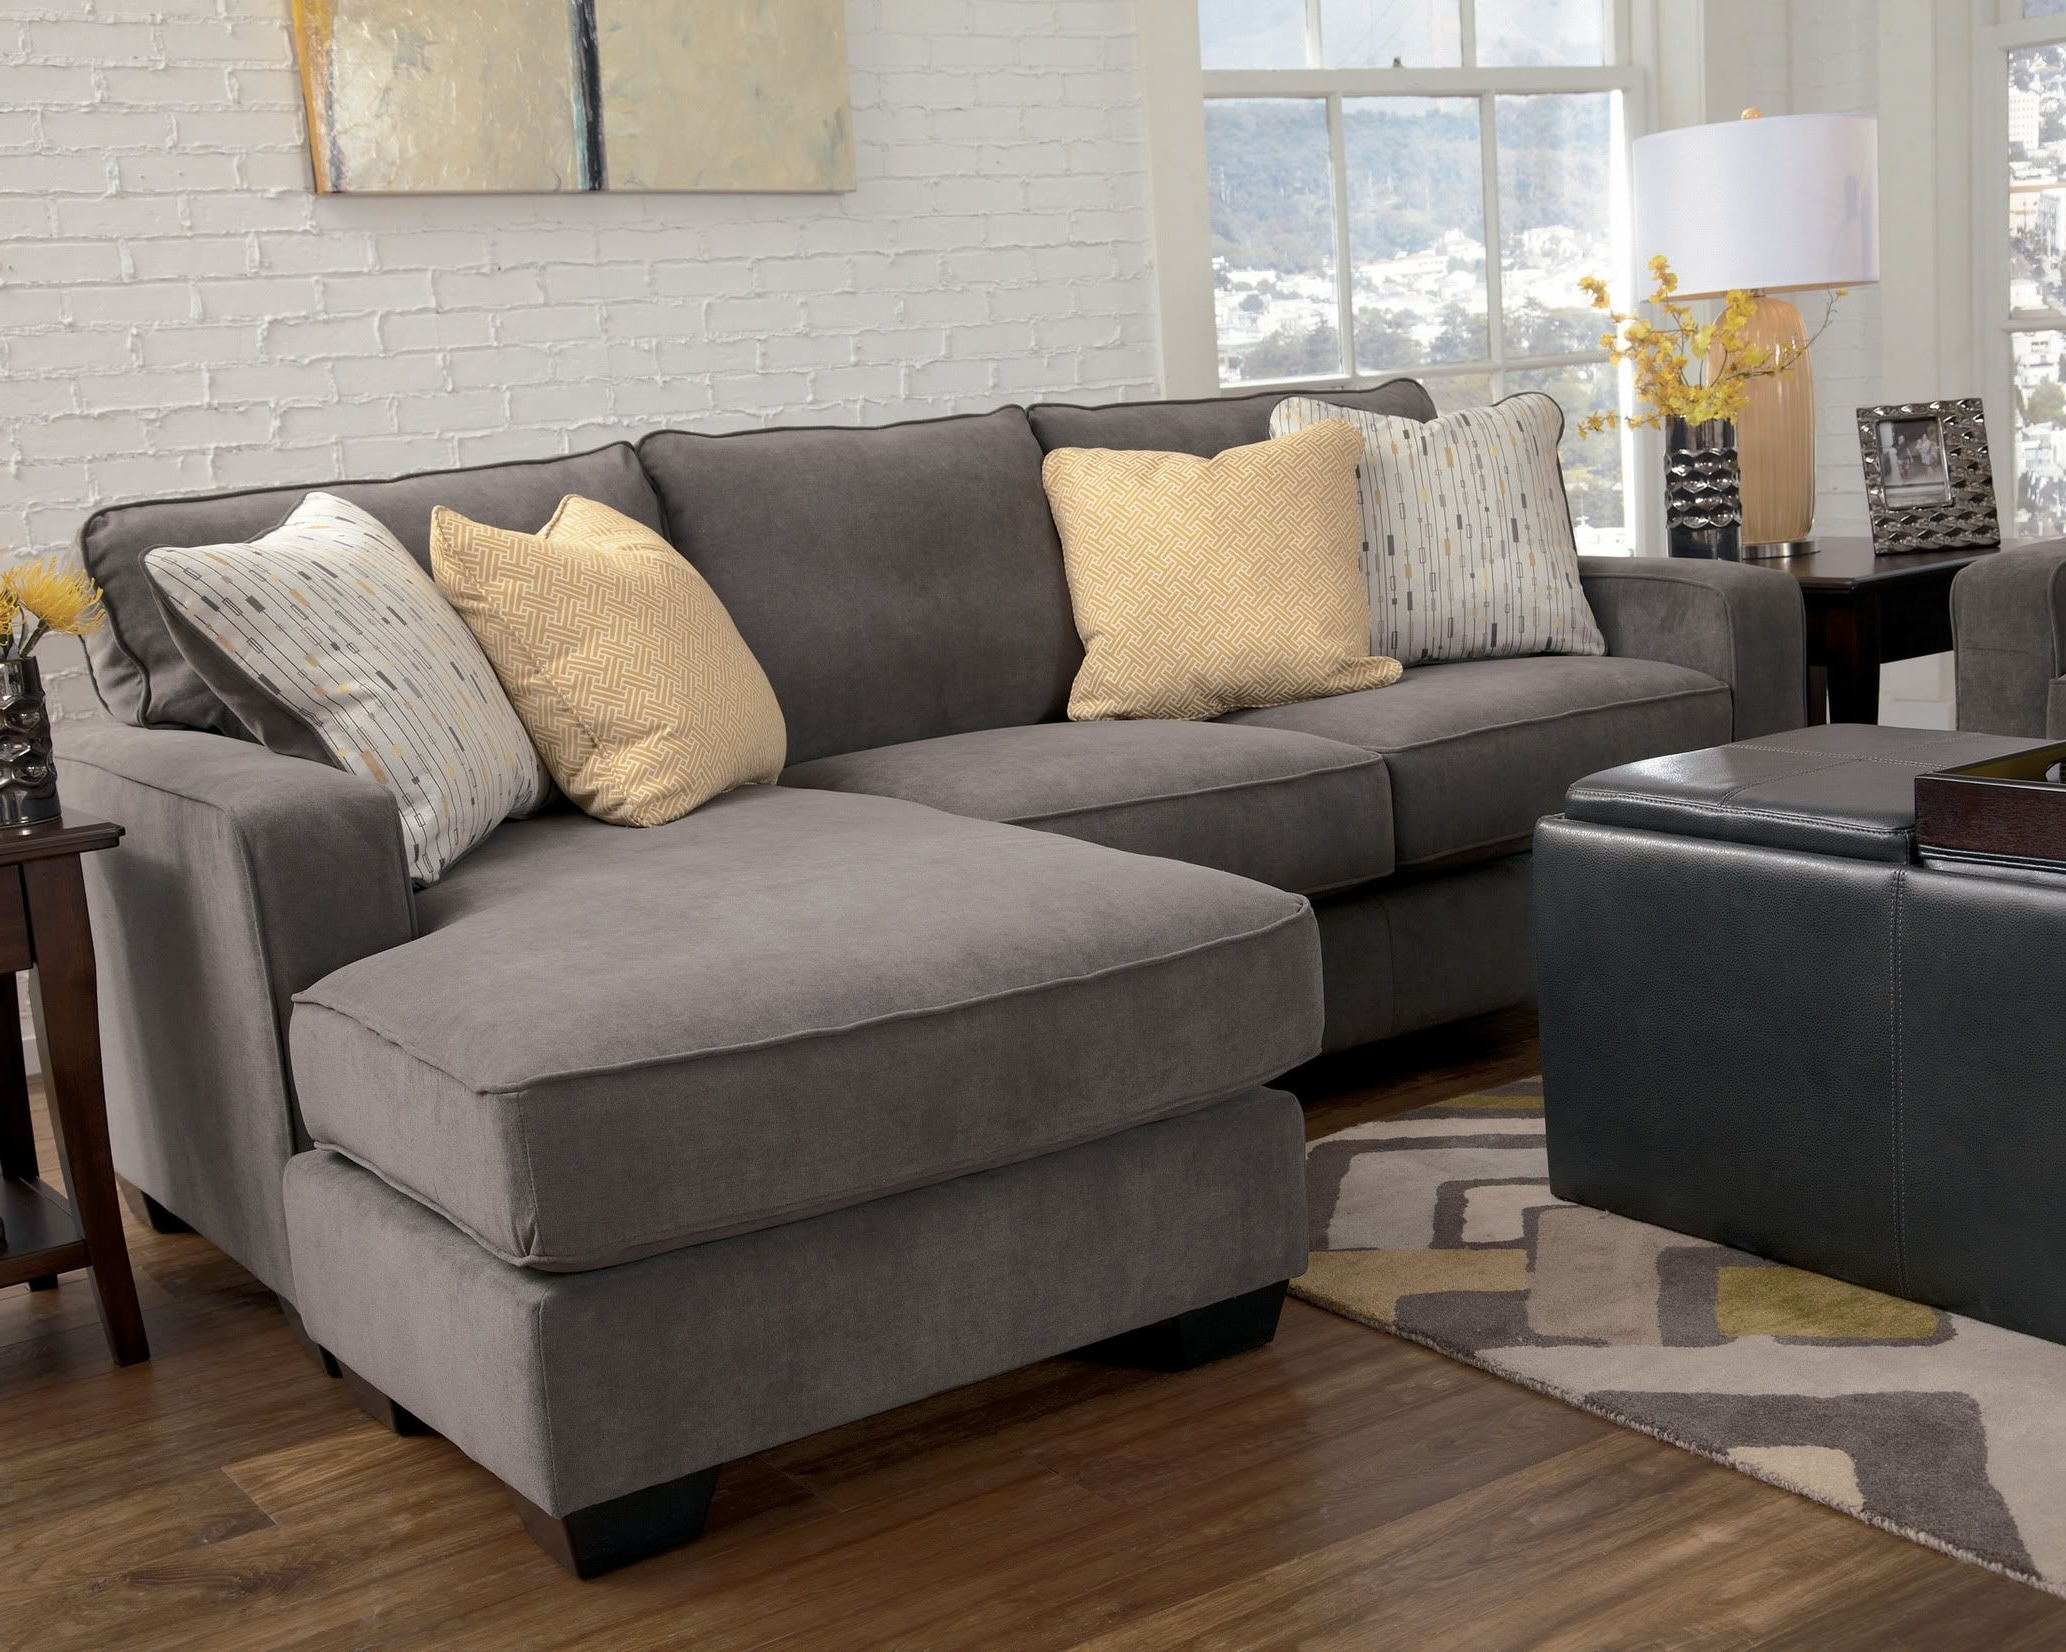 Sofas With Reversible Chaise Intended For Current Marble Contemporary Sofa Chaise Living Room Furniture Fabric (View 7 of 15)